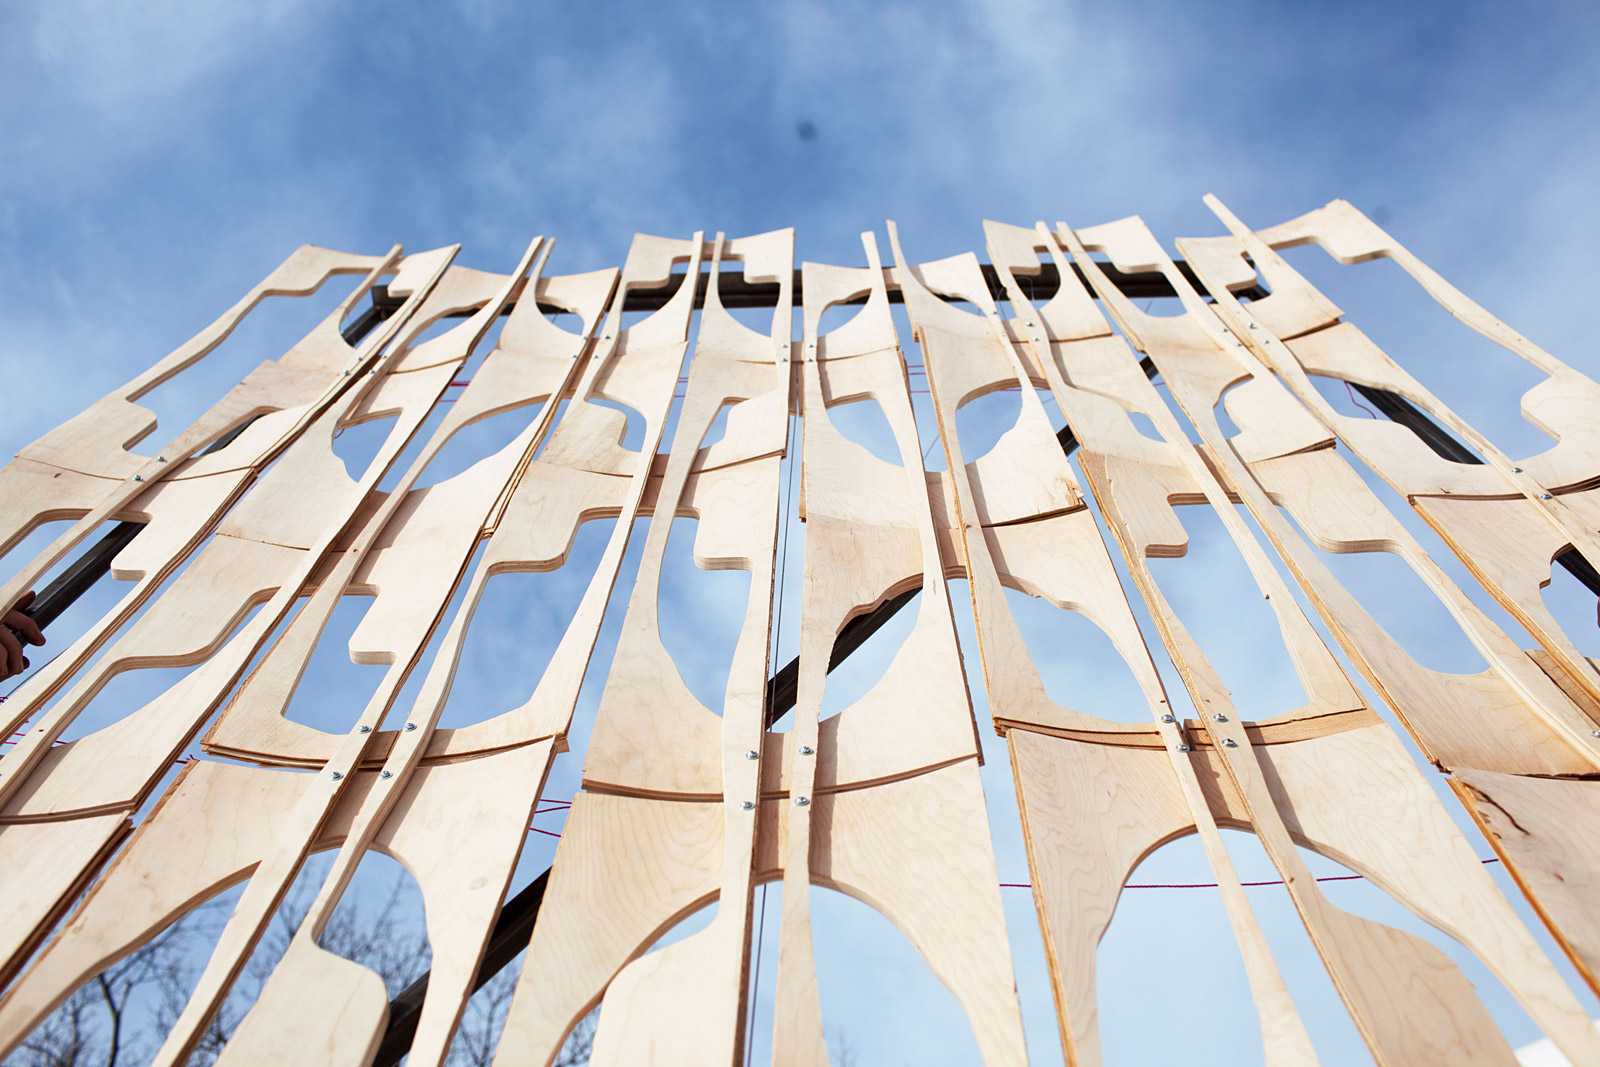 PARTY WALL BY CODA – aasarchitecture